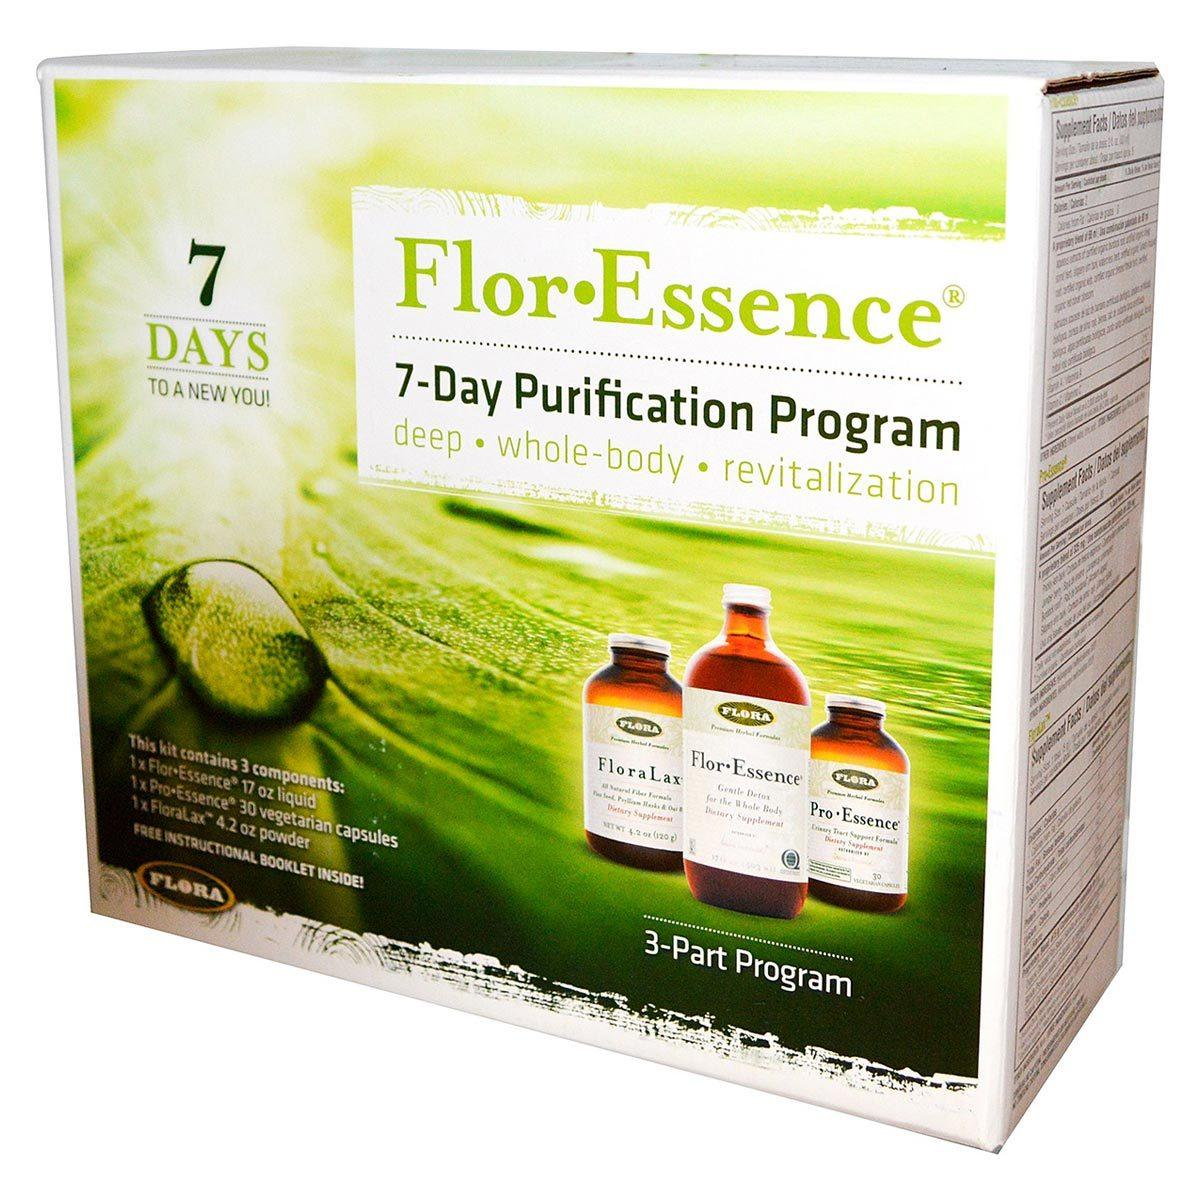 Flora (Udo's Choice) Flor-Essence 7-Day Purification Program Teas Flora (Udo's Choice)  (1058289713195)